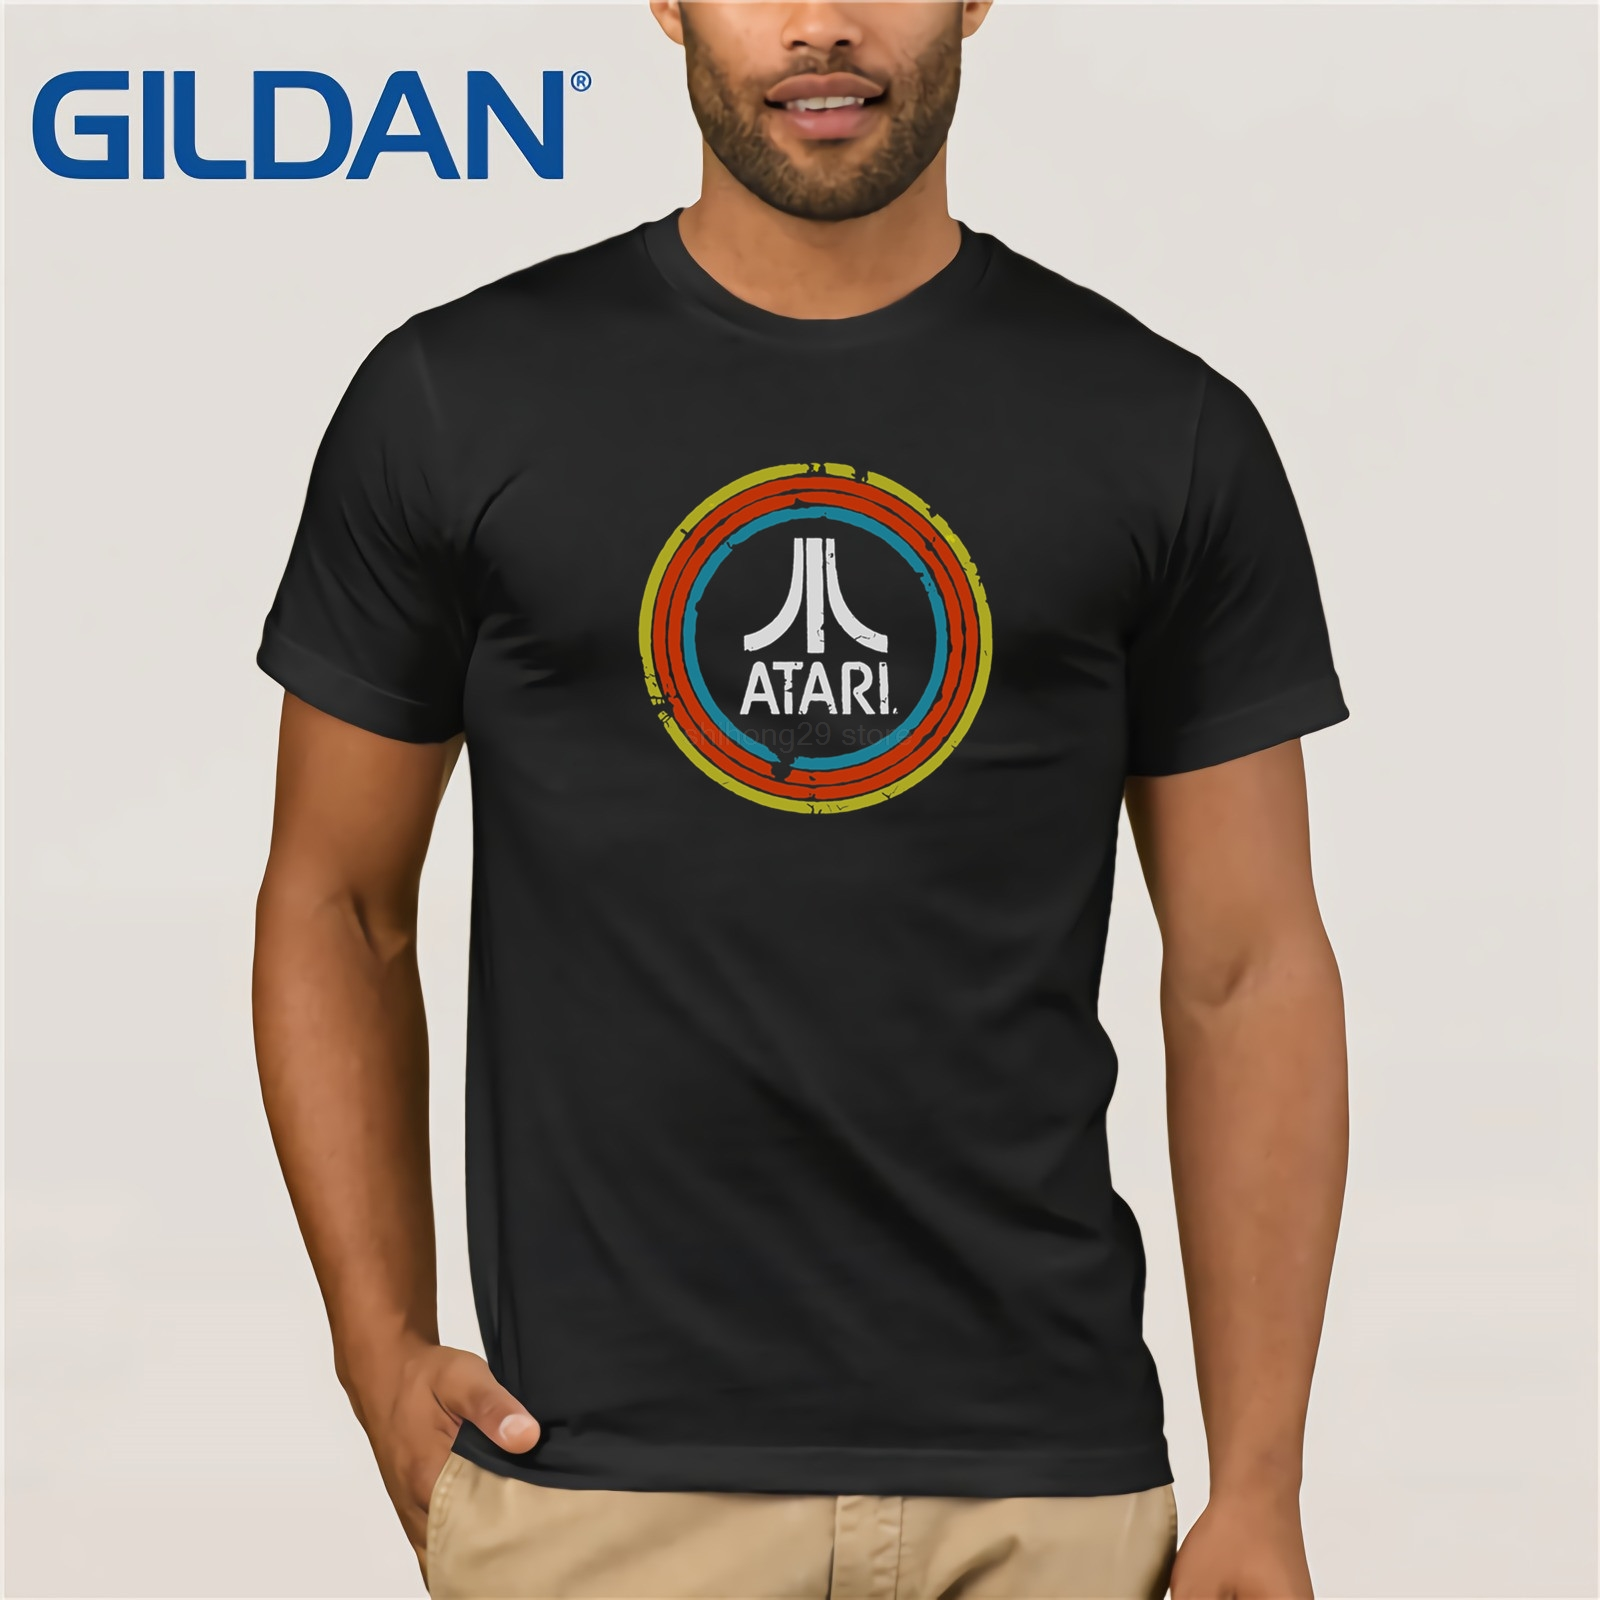 Atari T-Shirt 2019 Summer New Style Men's Short Sleeve T-Shirt